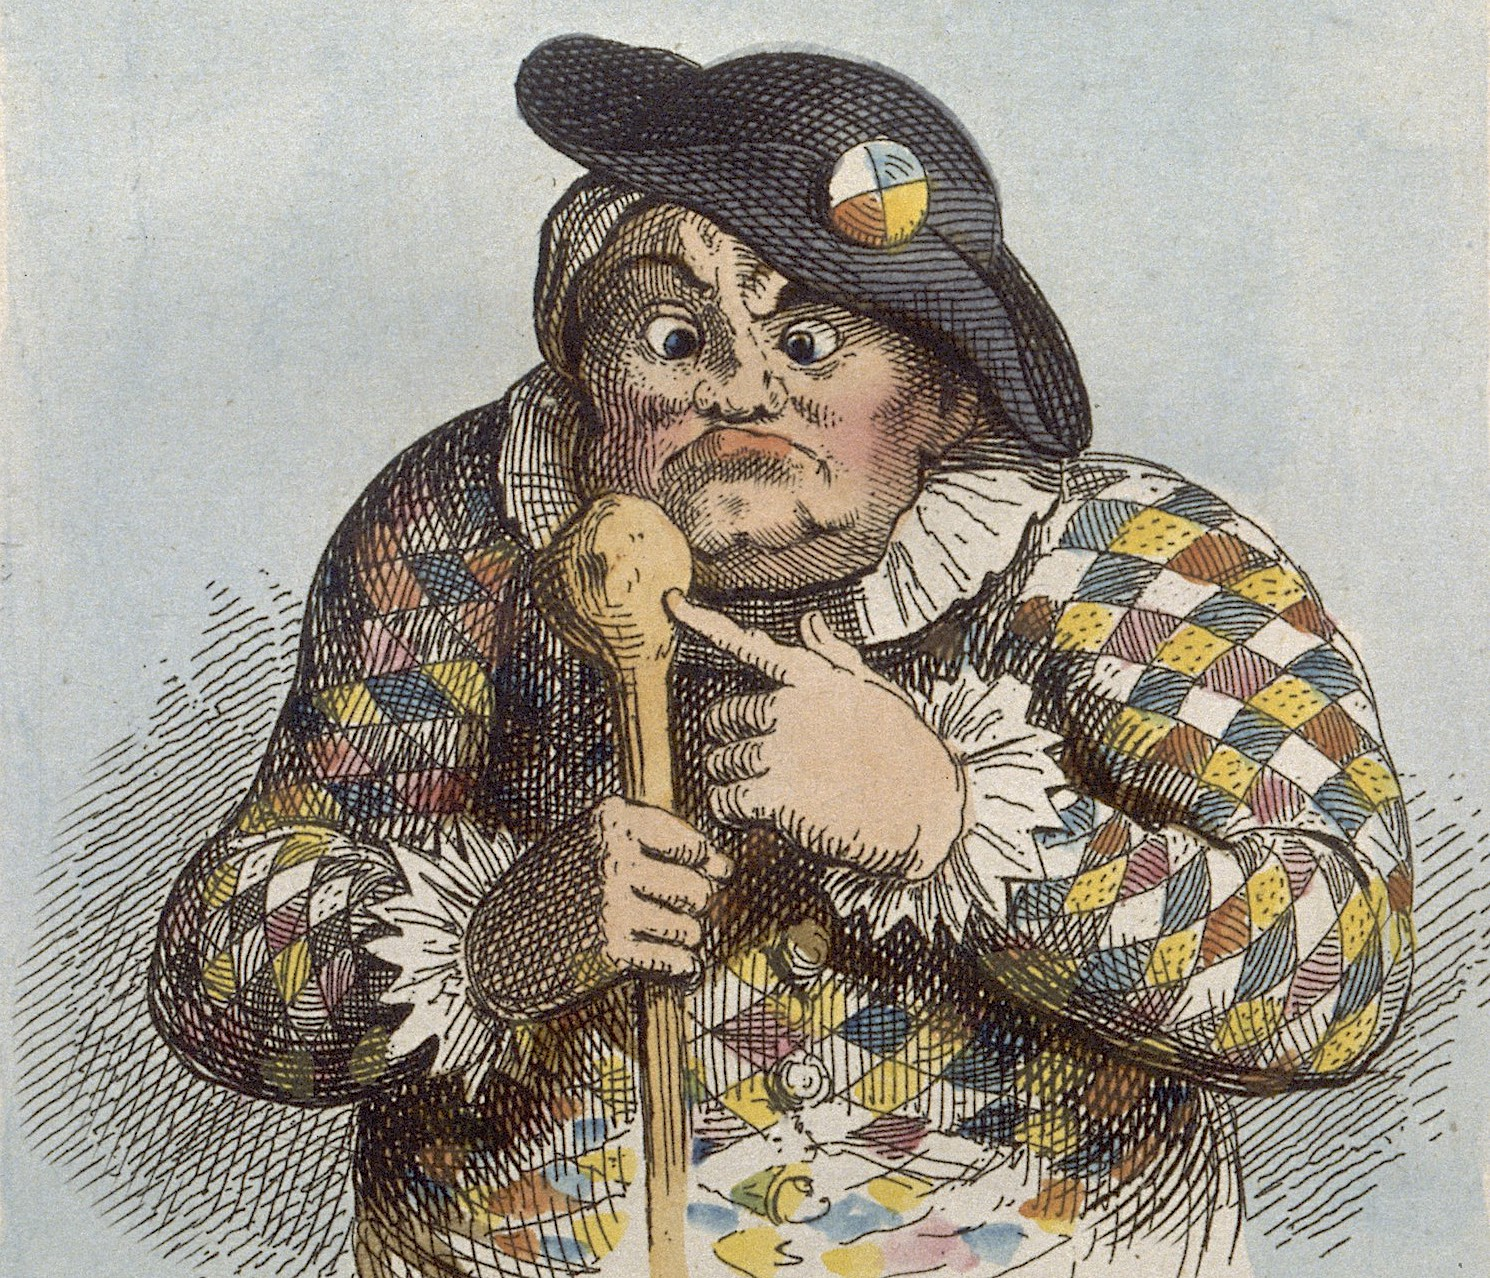 Color illustration of a woman in motley